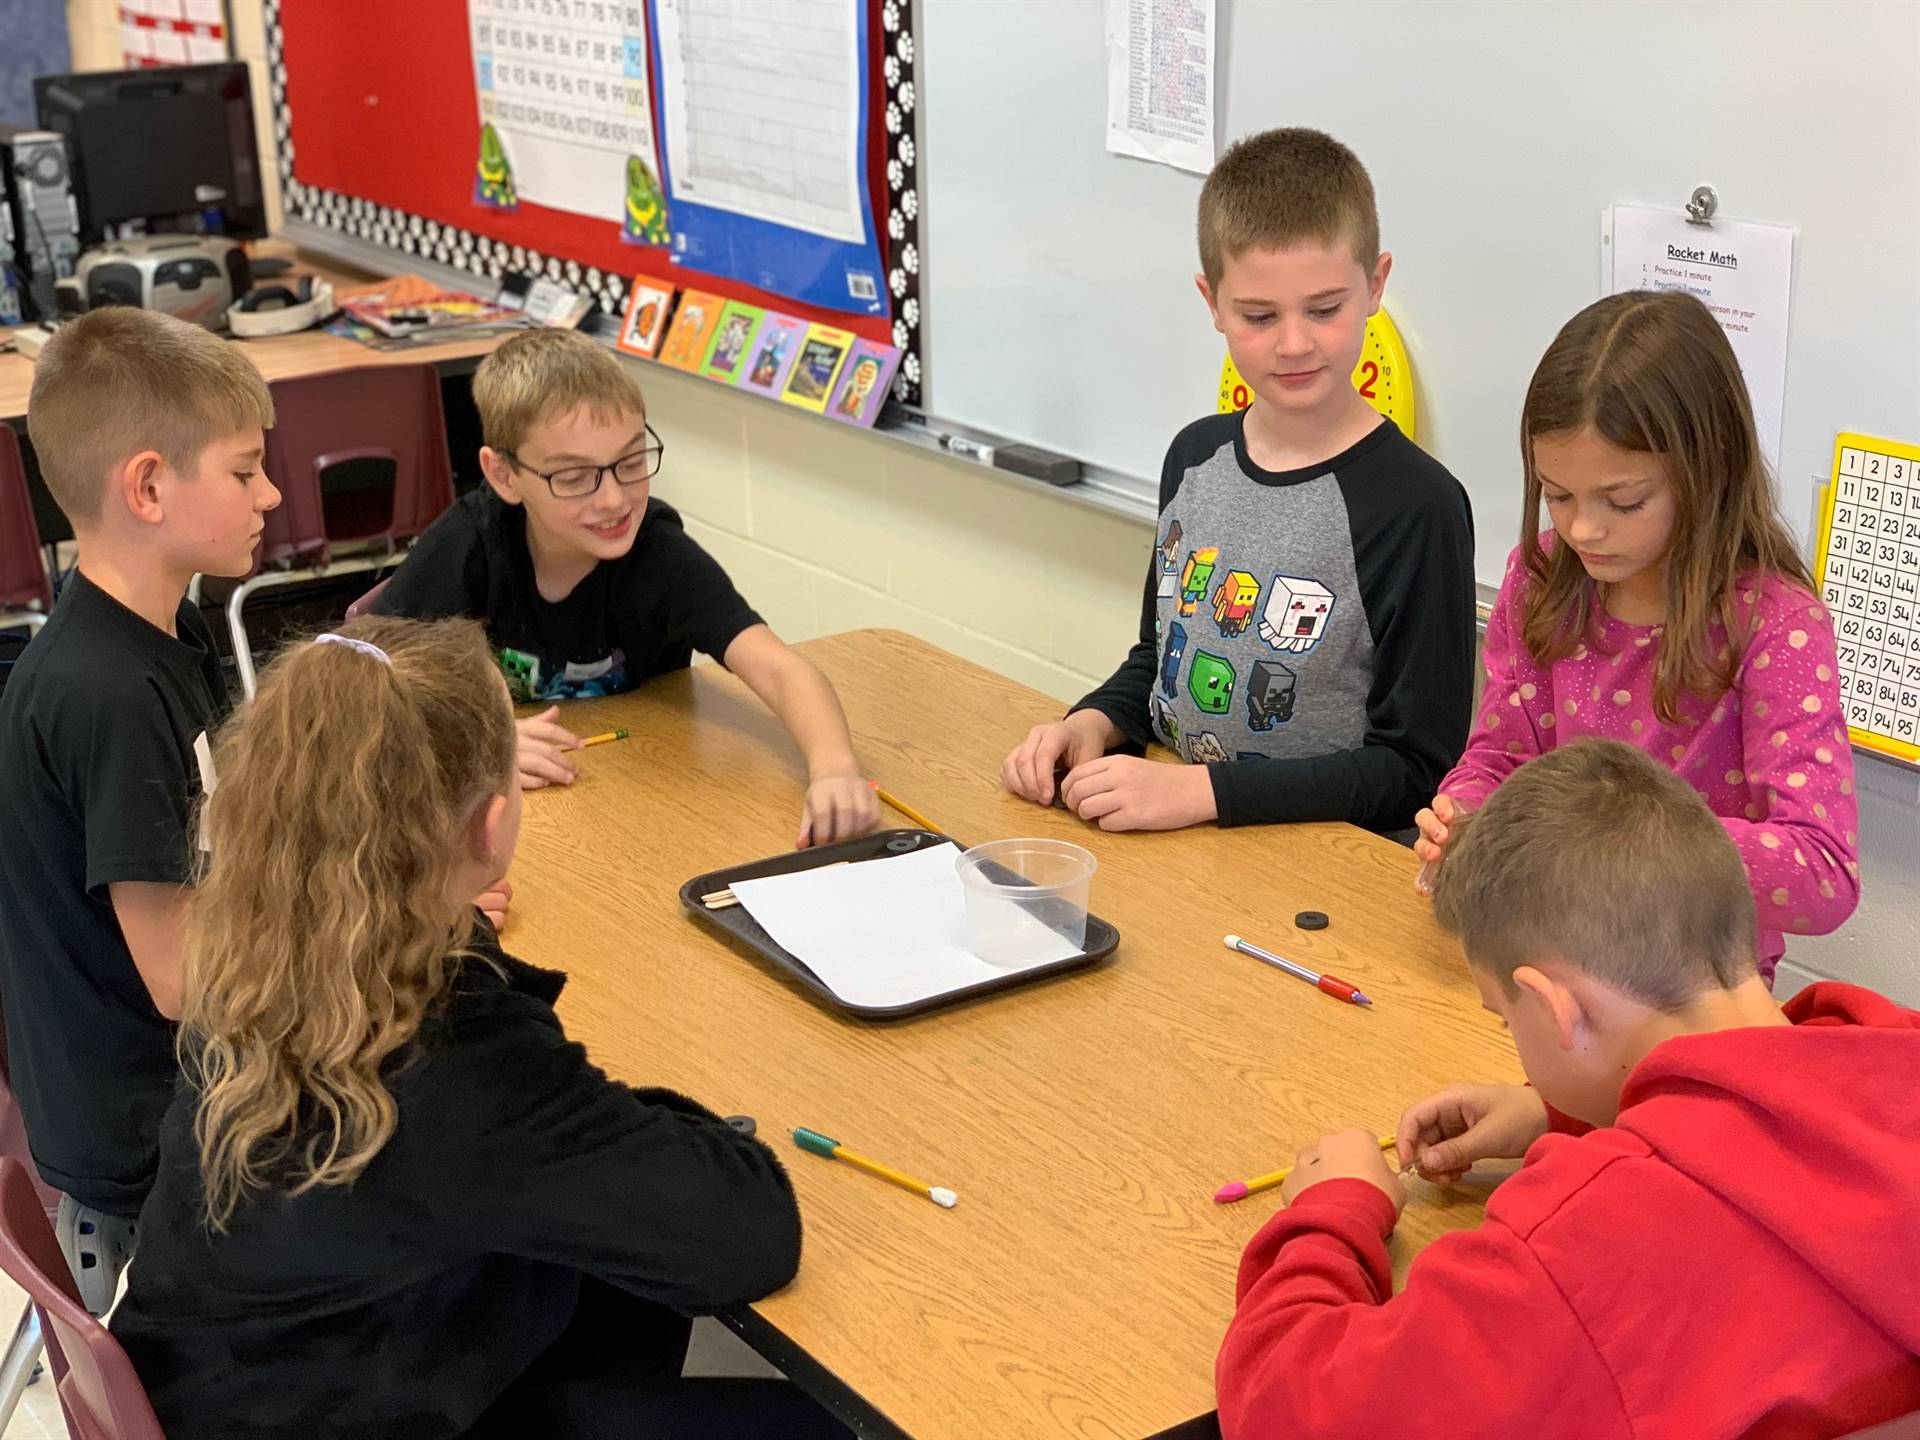 Elementary students exploring magnetism in science class